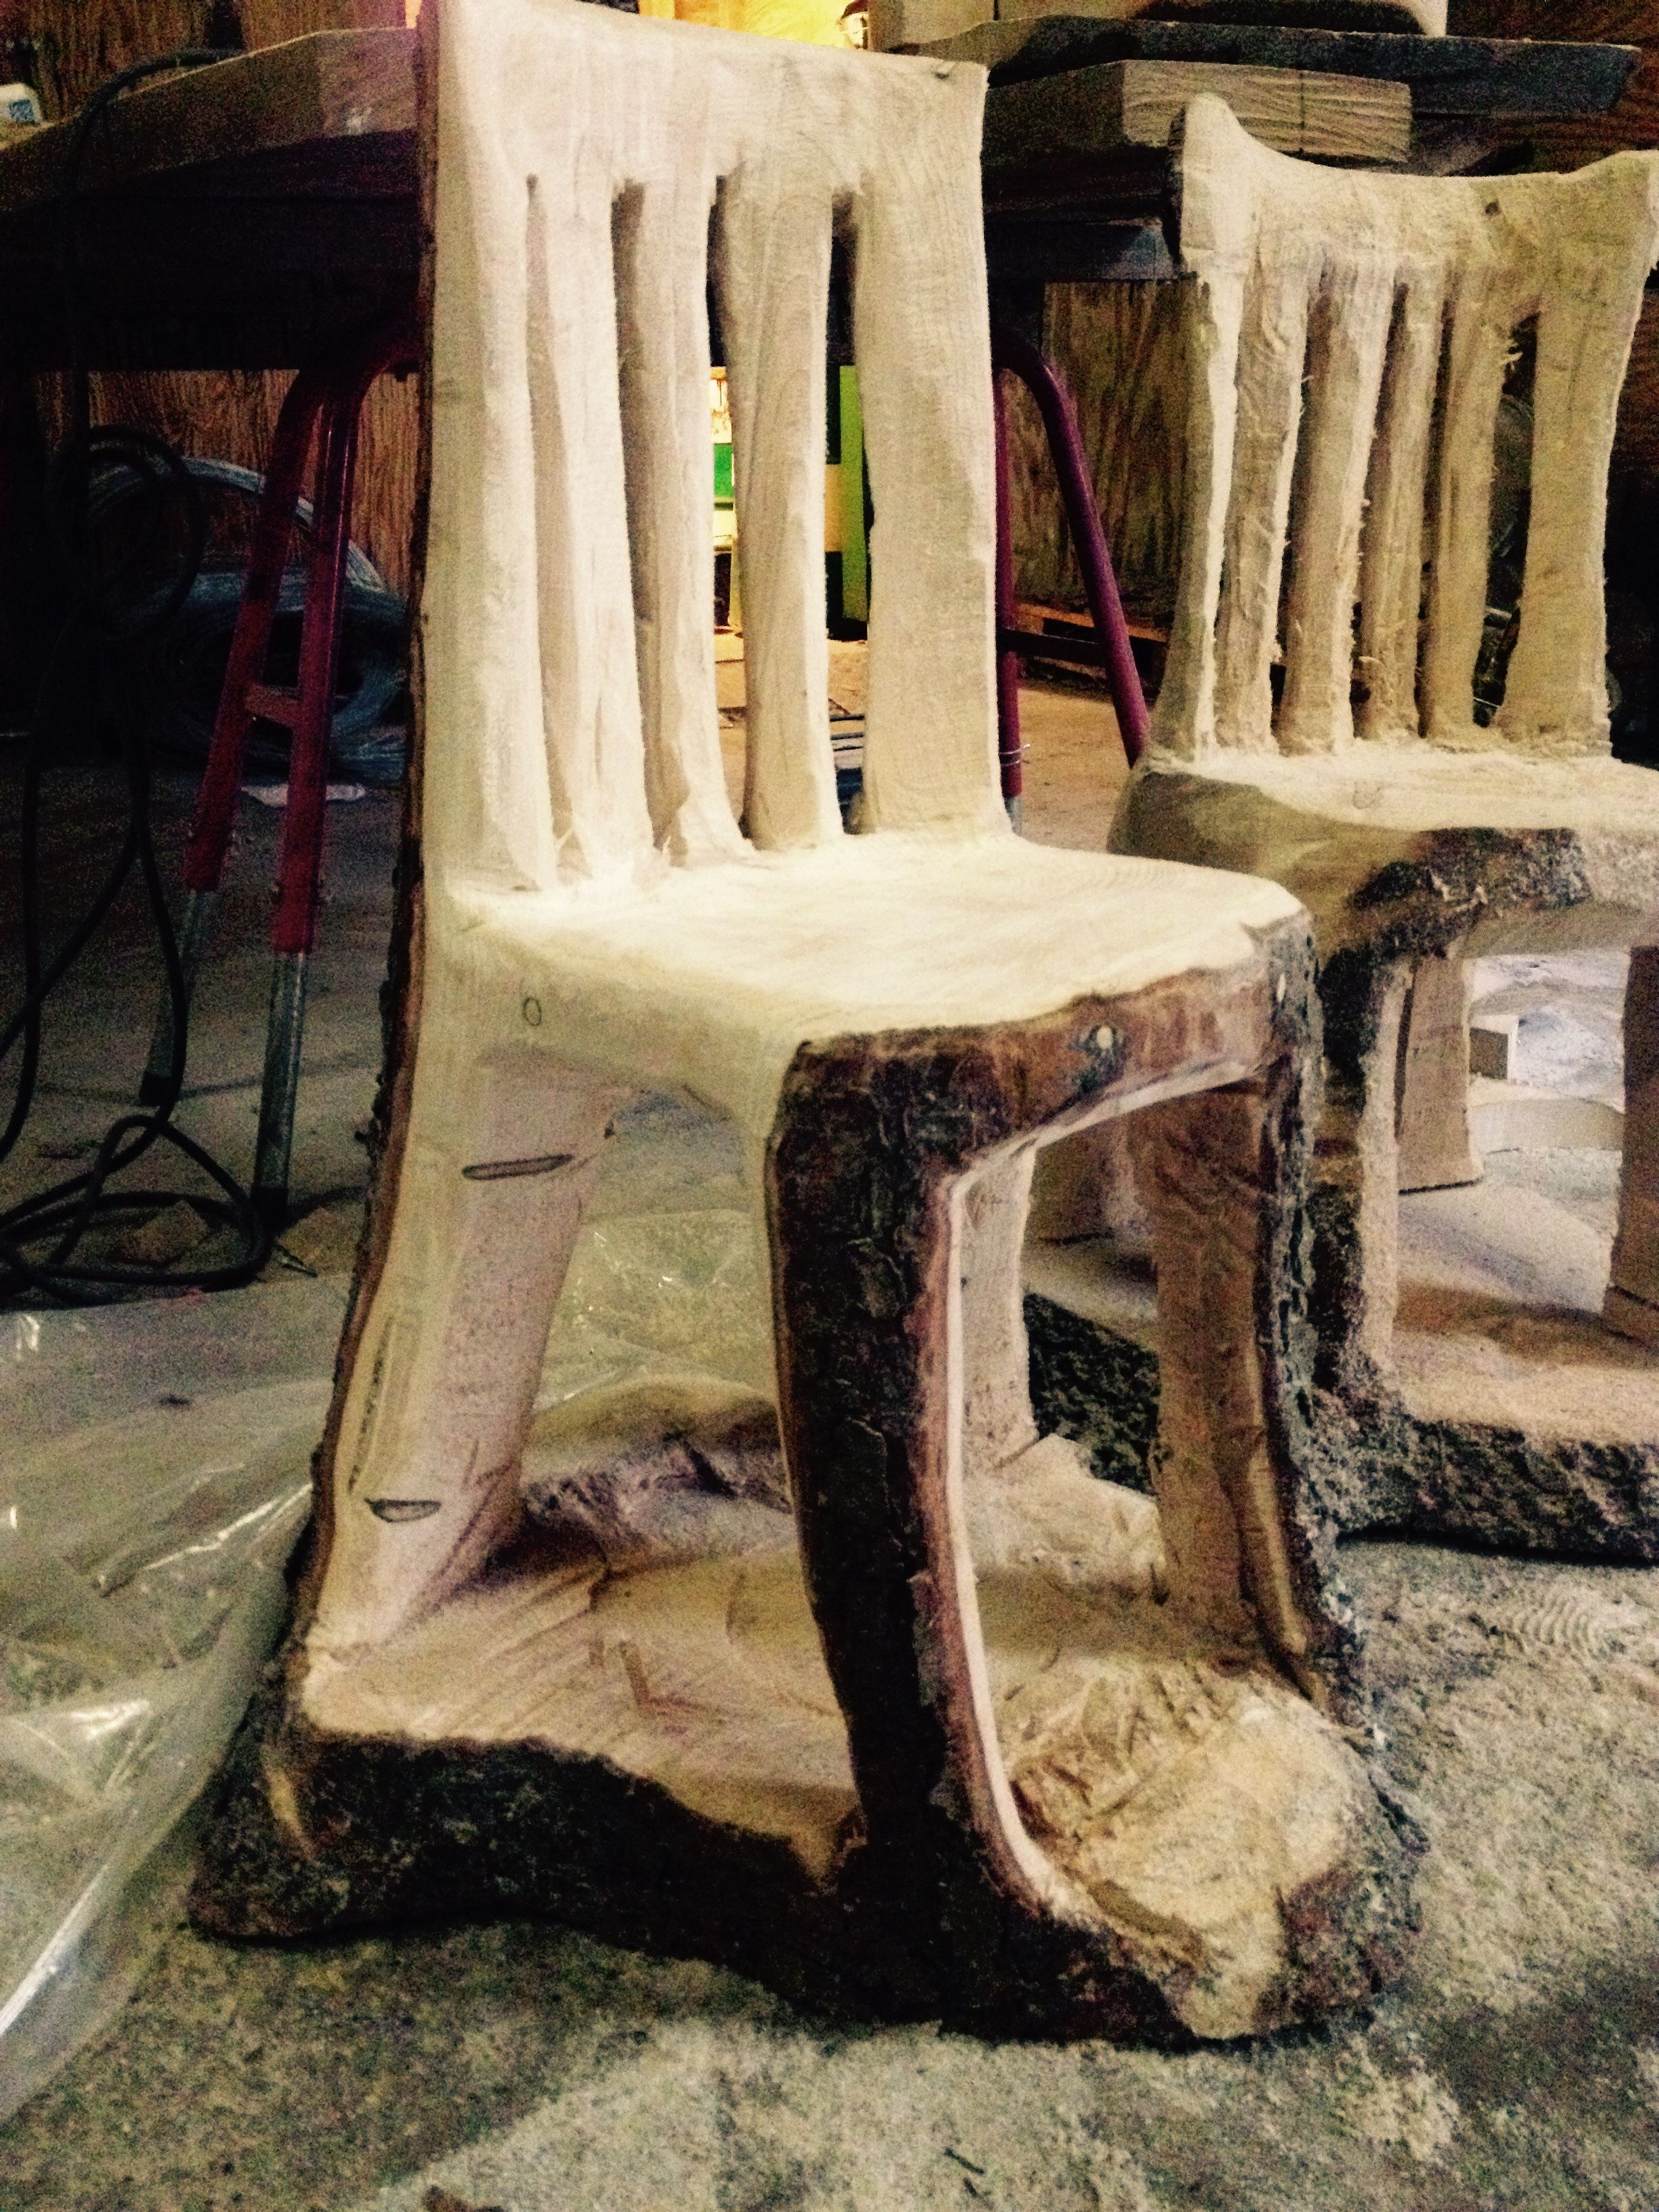 Chair In Progress   Made With Chainsaw From Log Of Wood.